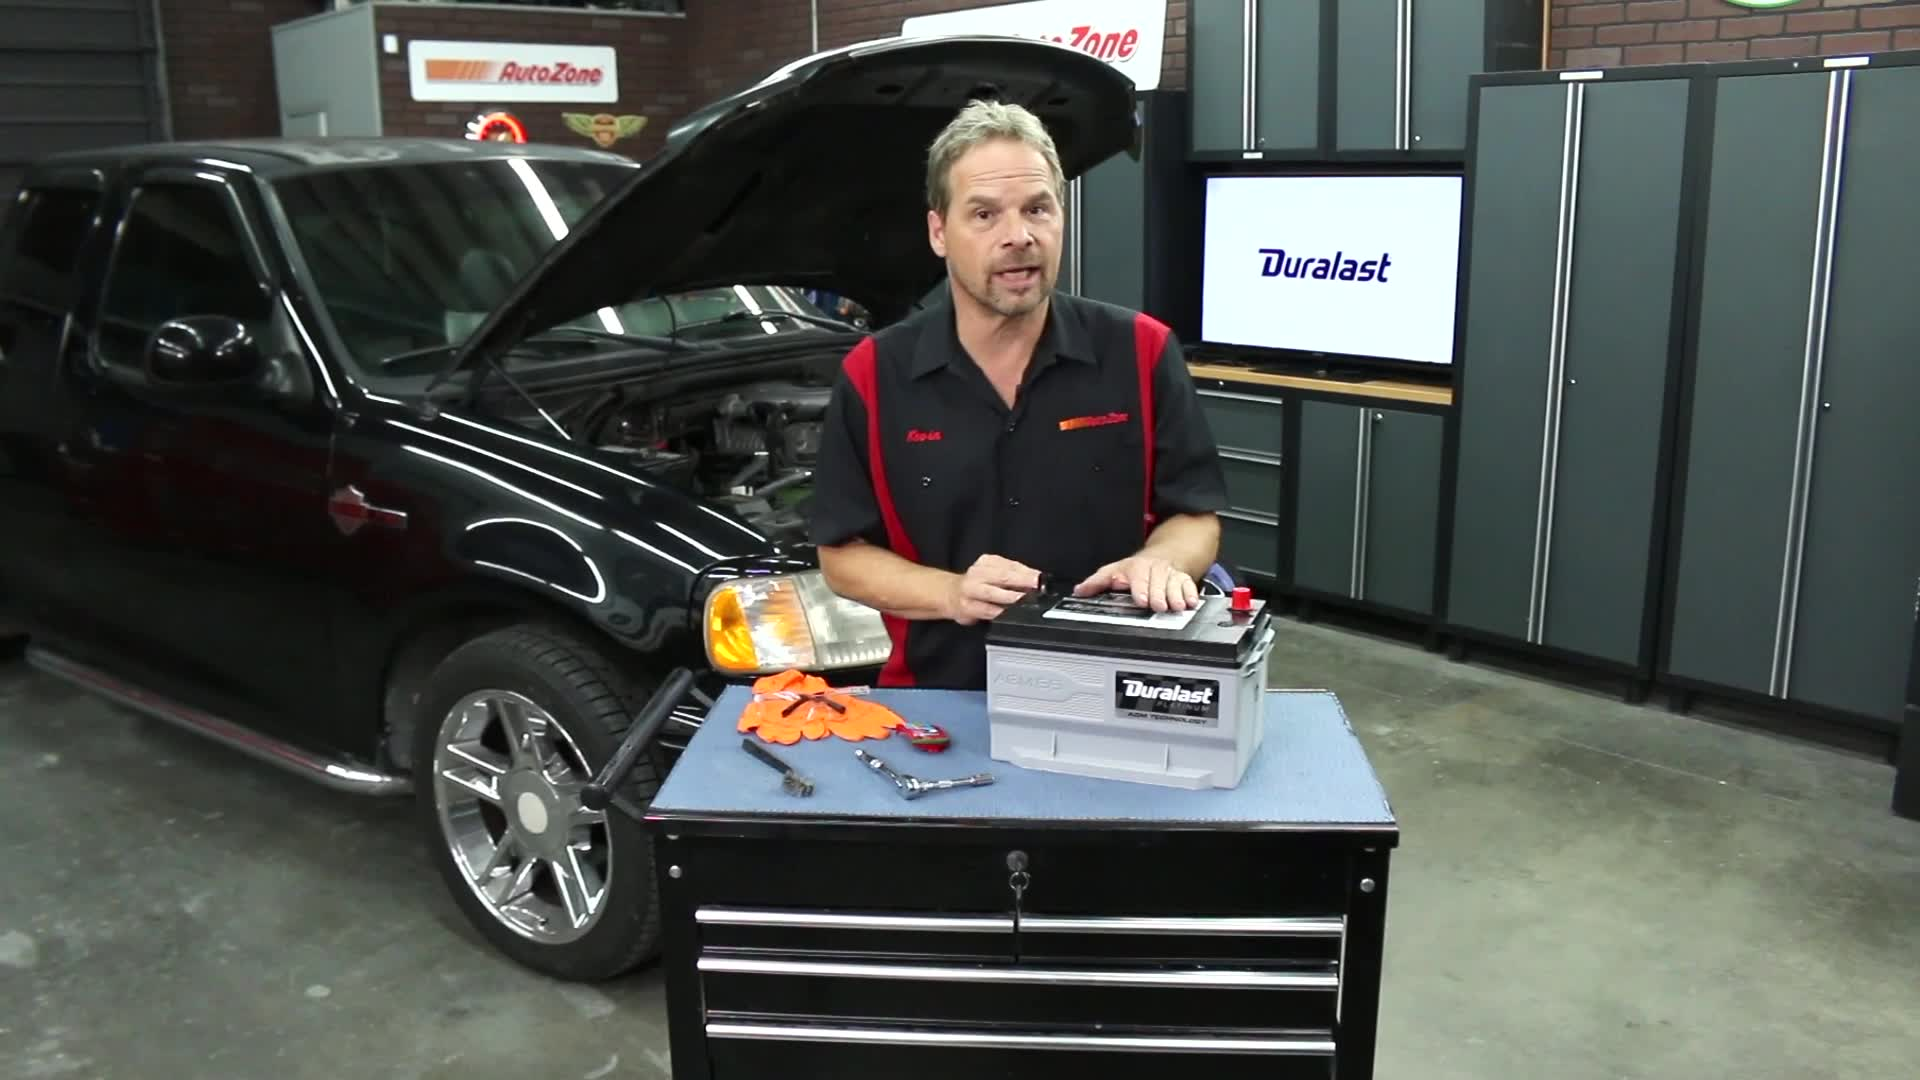 AutoZone | How to Flush & Fill Your Cooling System – AutoZone How to Videos